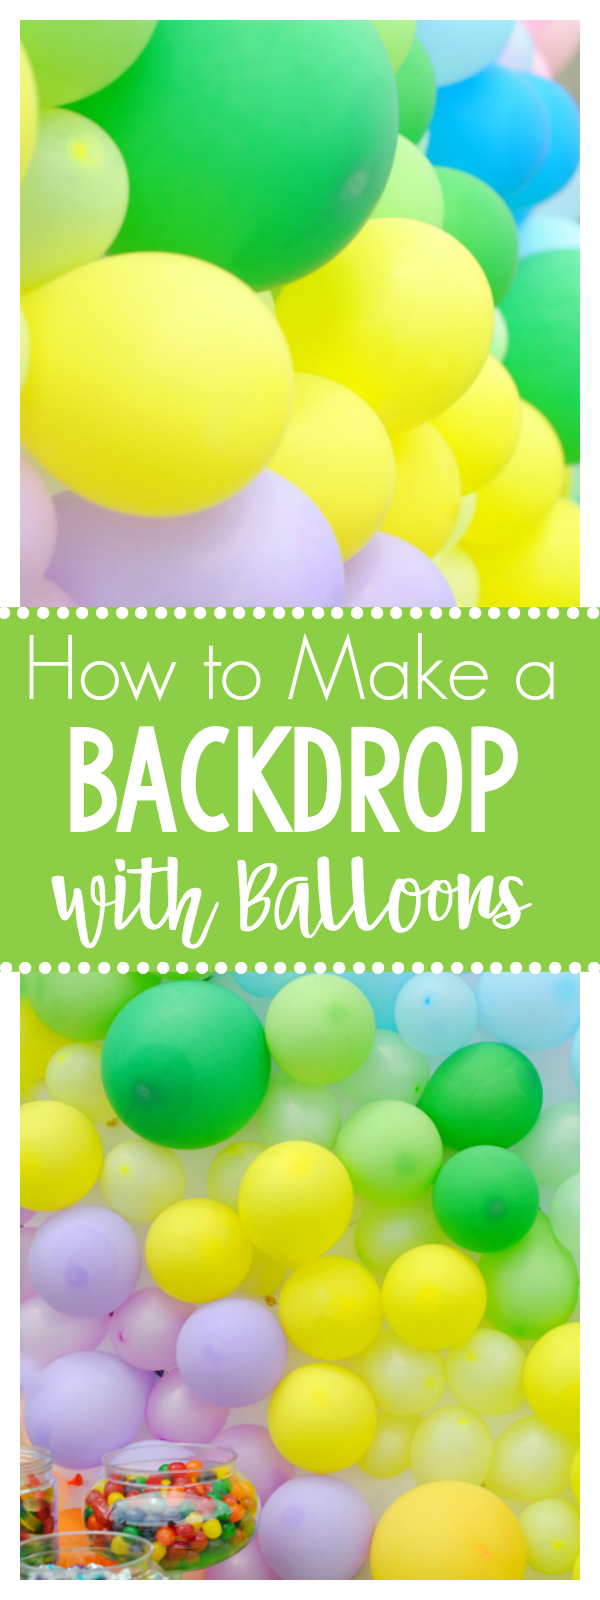 How to Make a Backdrop with Balloons for Your Next Party